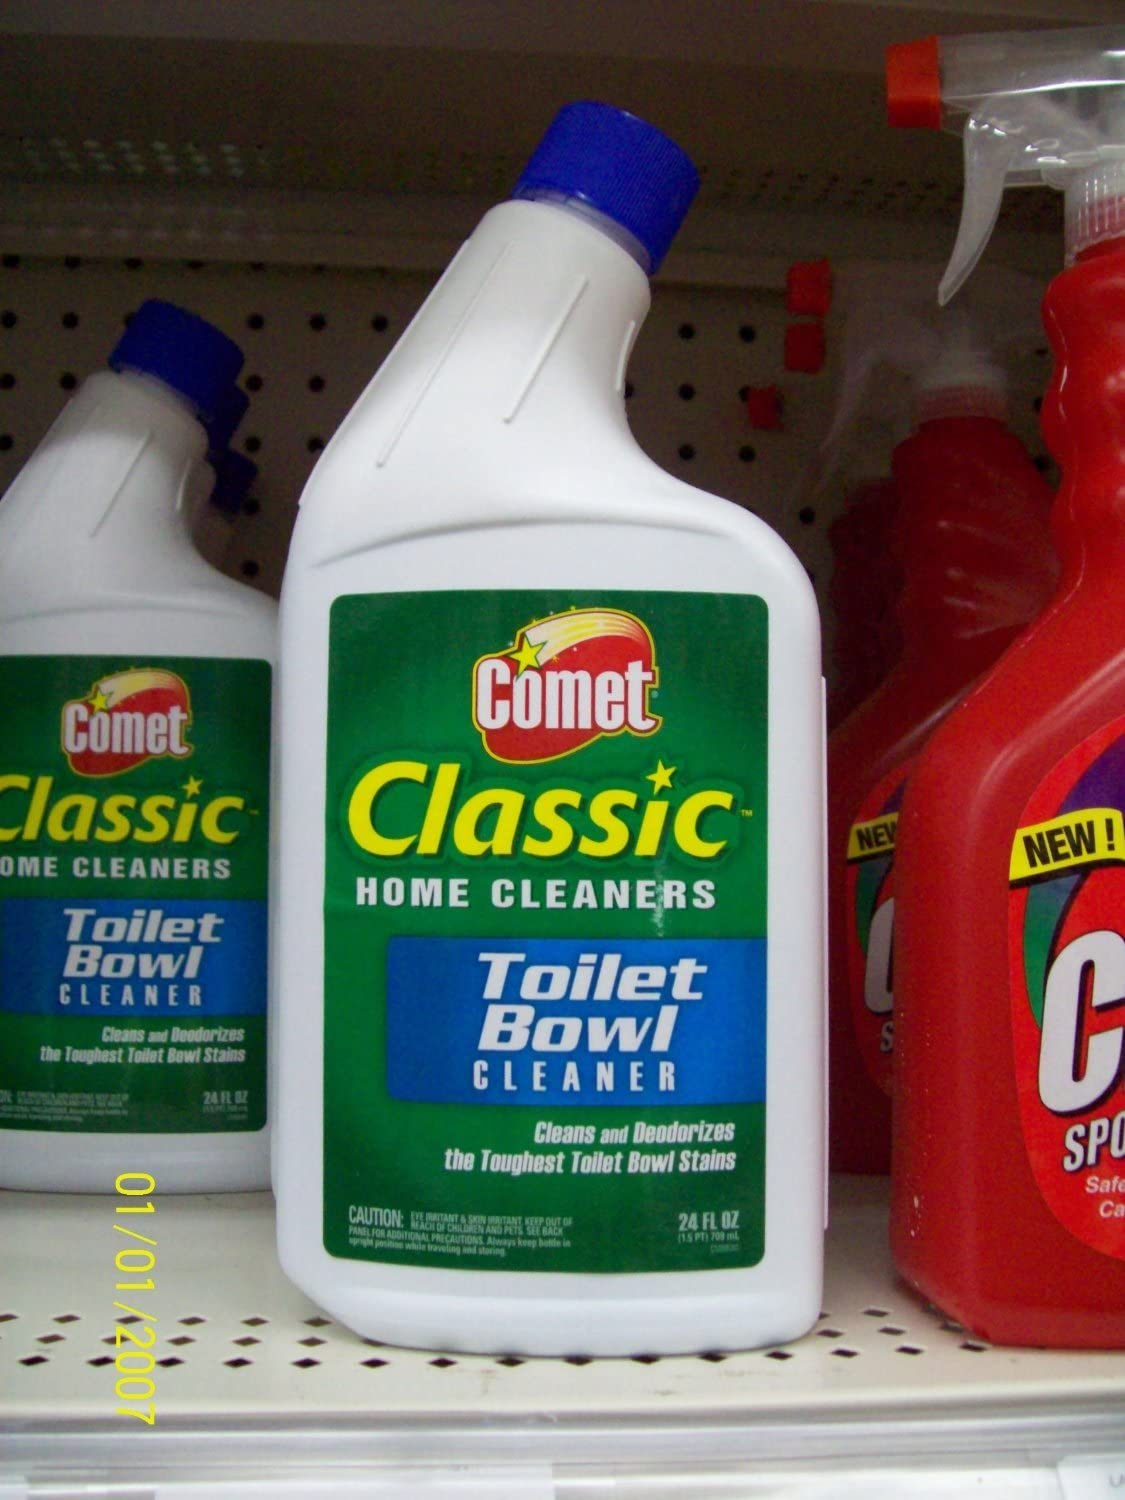 Comet Classic Toilet Bowl Cleaner 24 Fluid Ounce (Pack of 2)